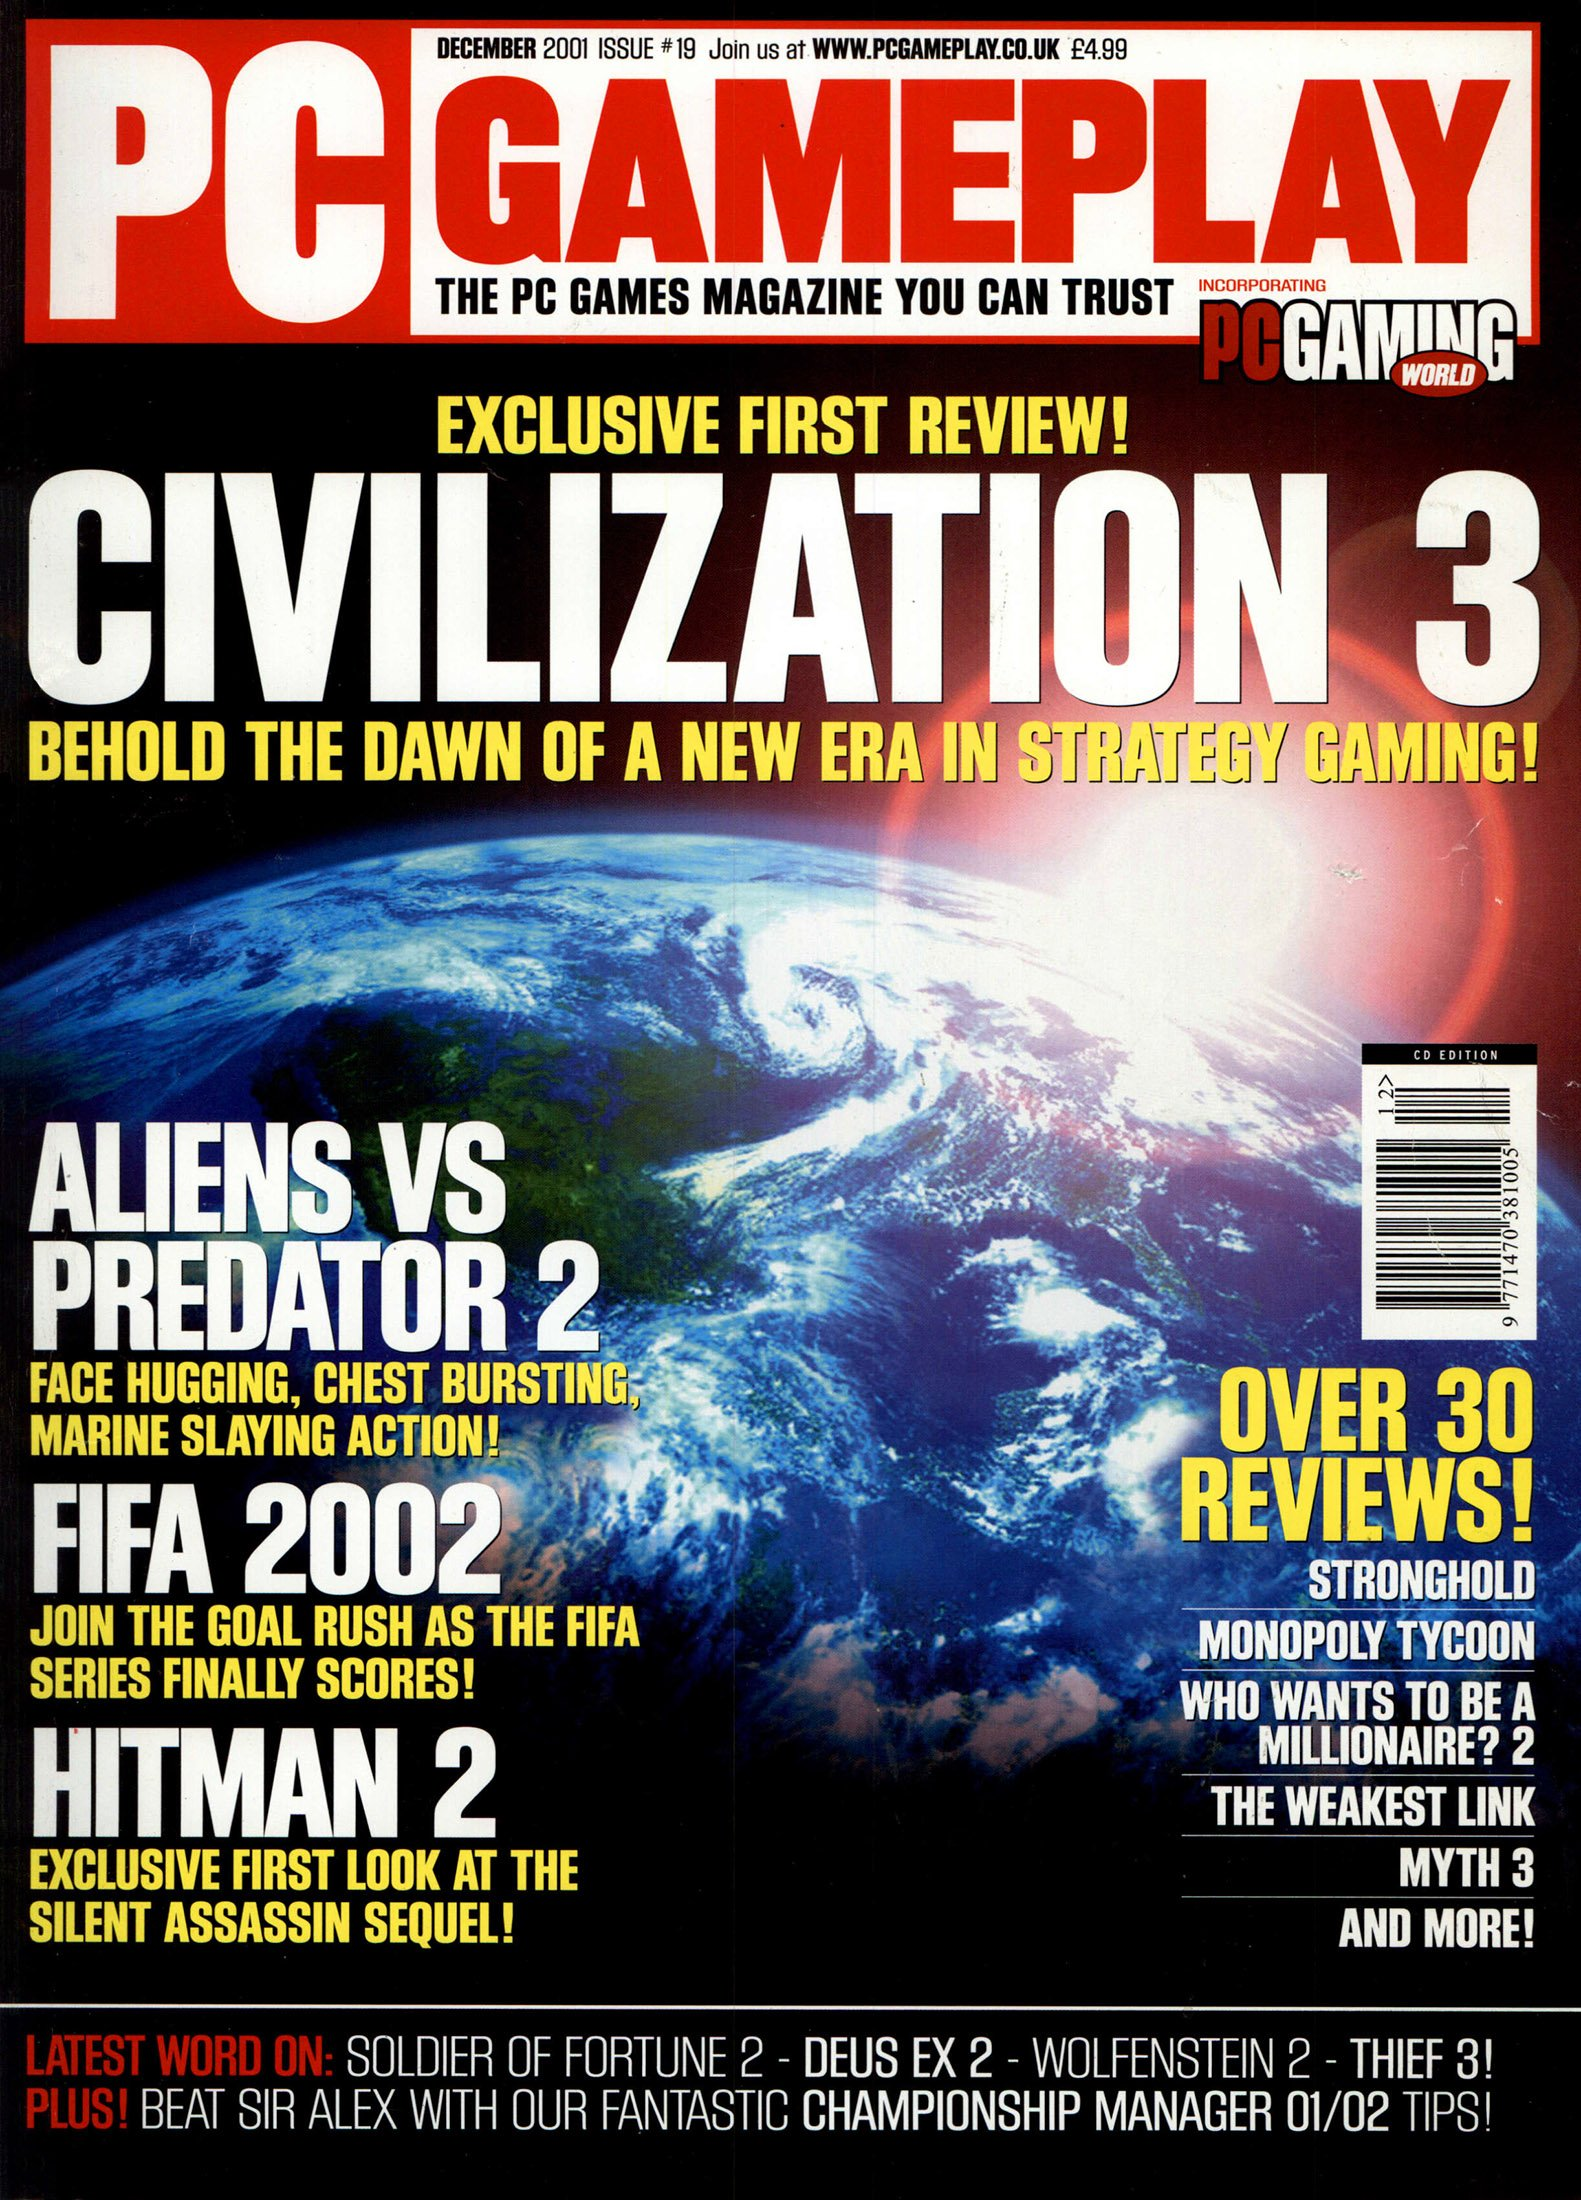 PC Gameplay Issue 19 (December 2001)